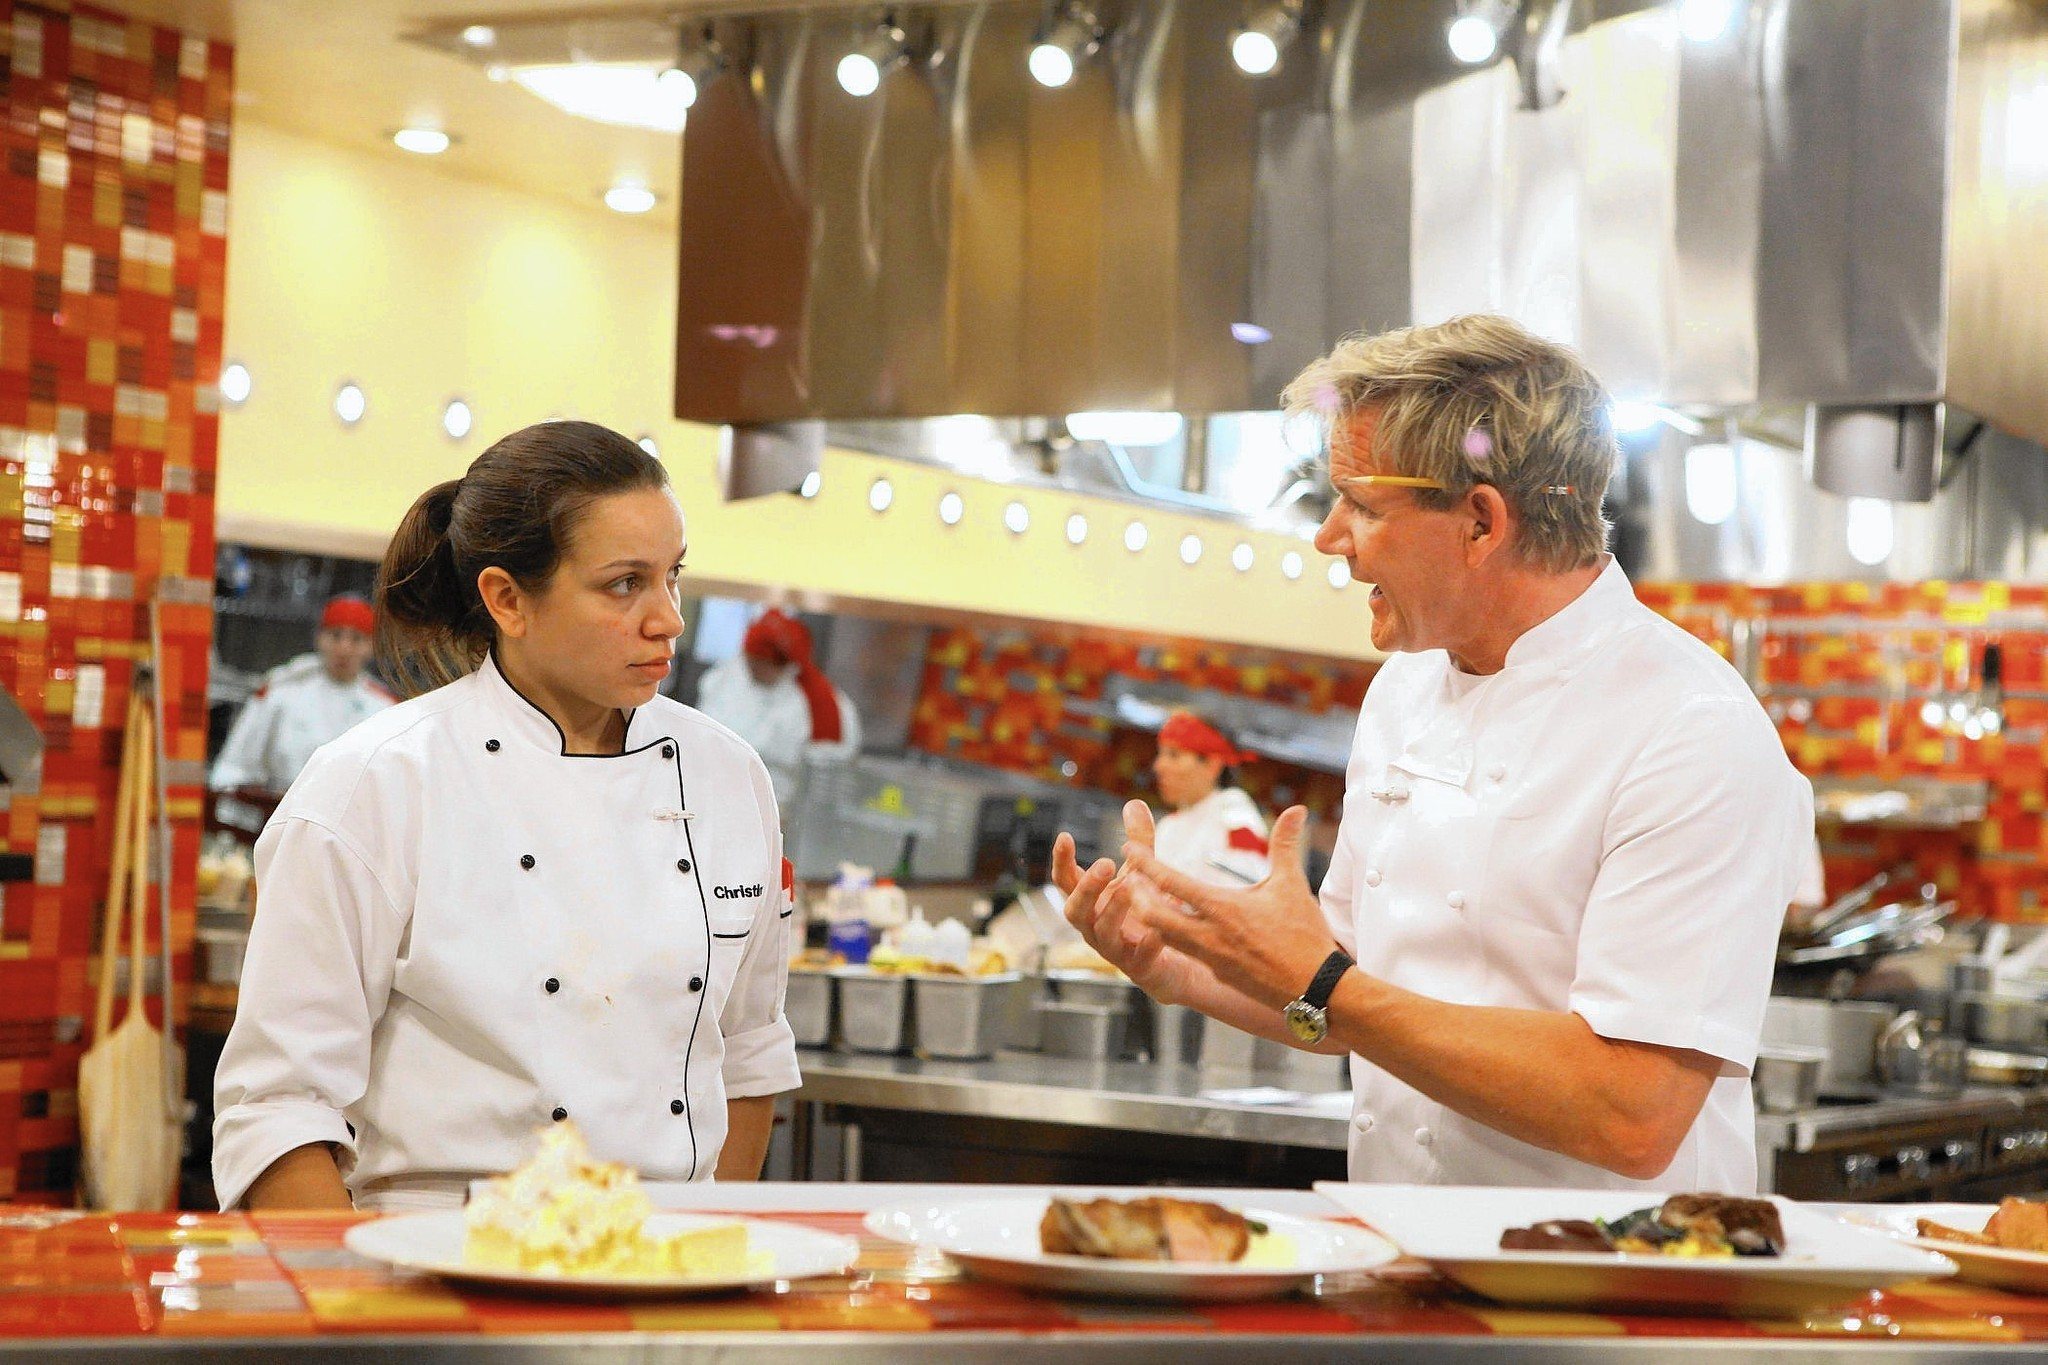 Restaurant Kitchen Chefs back in 'hell's kitchen': phillipsburg's christina wilson returns